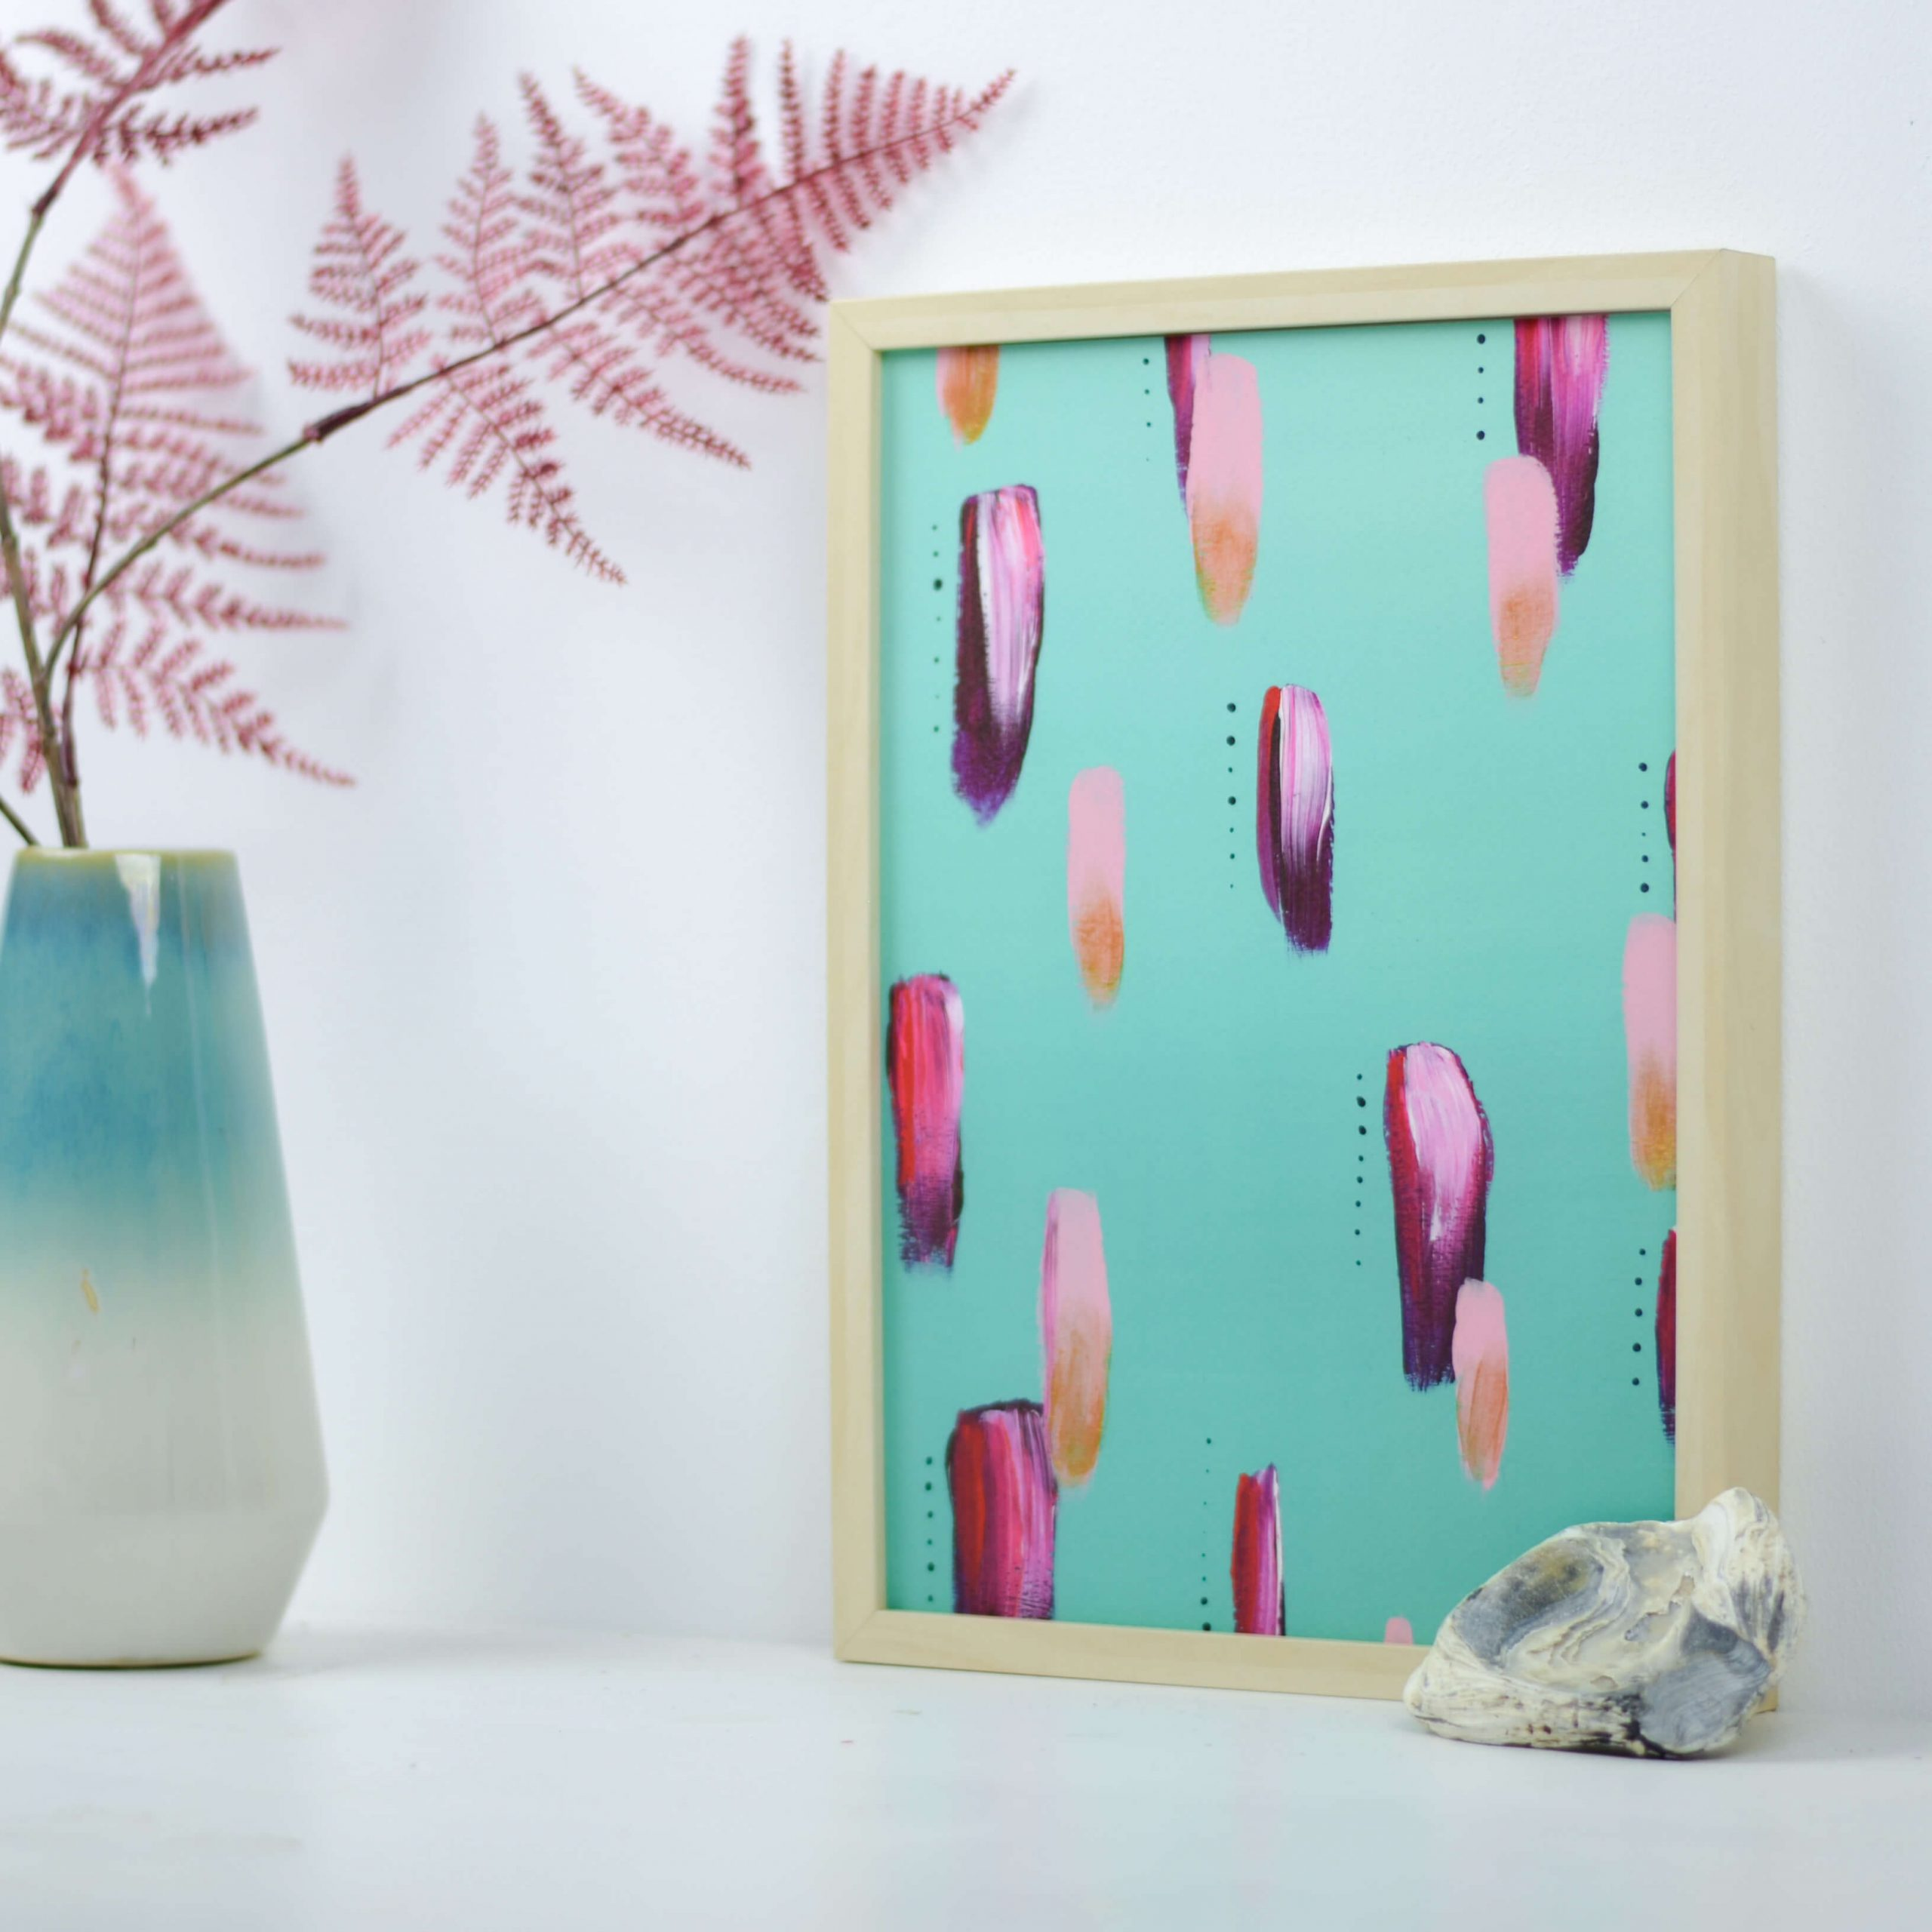 Our Perfect World Is A Place On Earth – A4 kunstprint